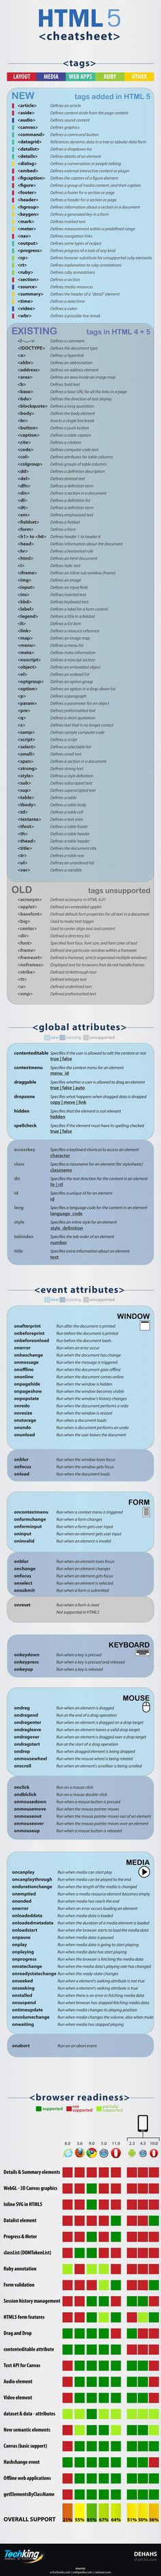 ultimate-html5-cheat-sheet-infographic